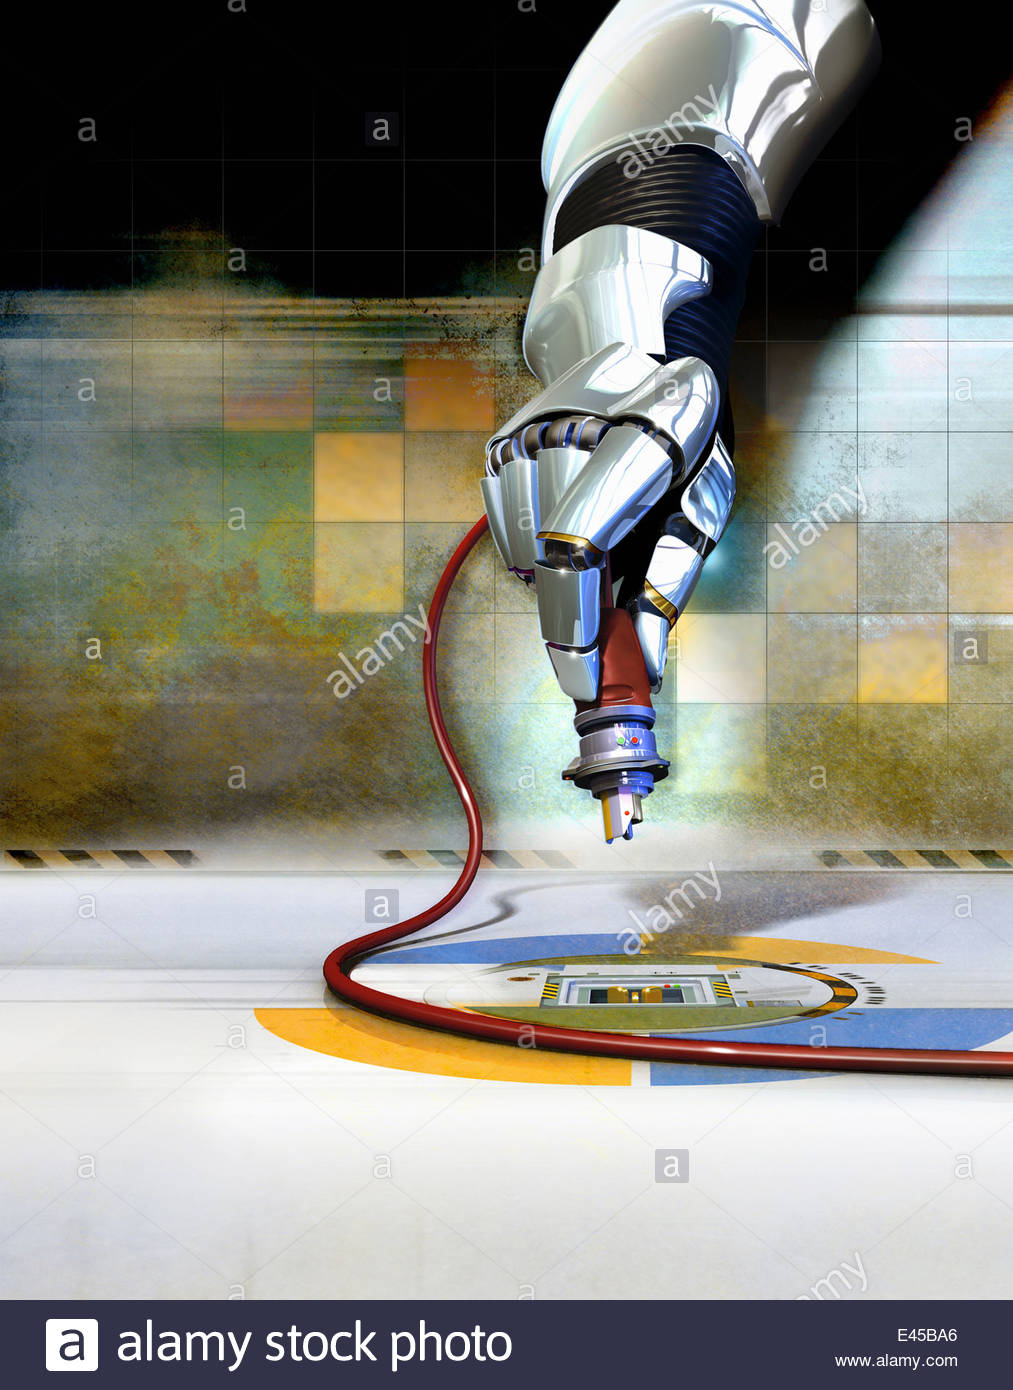 Robotic arm with tool - Stock Image